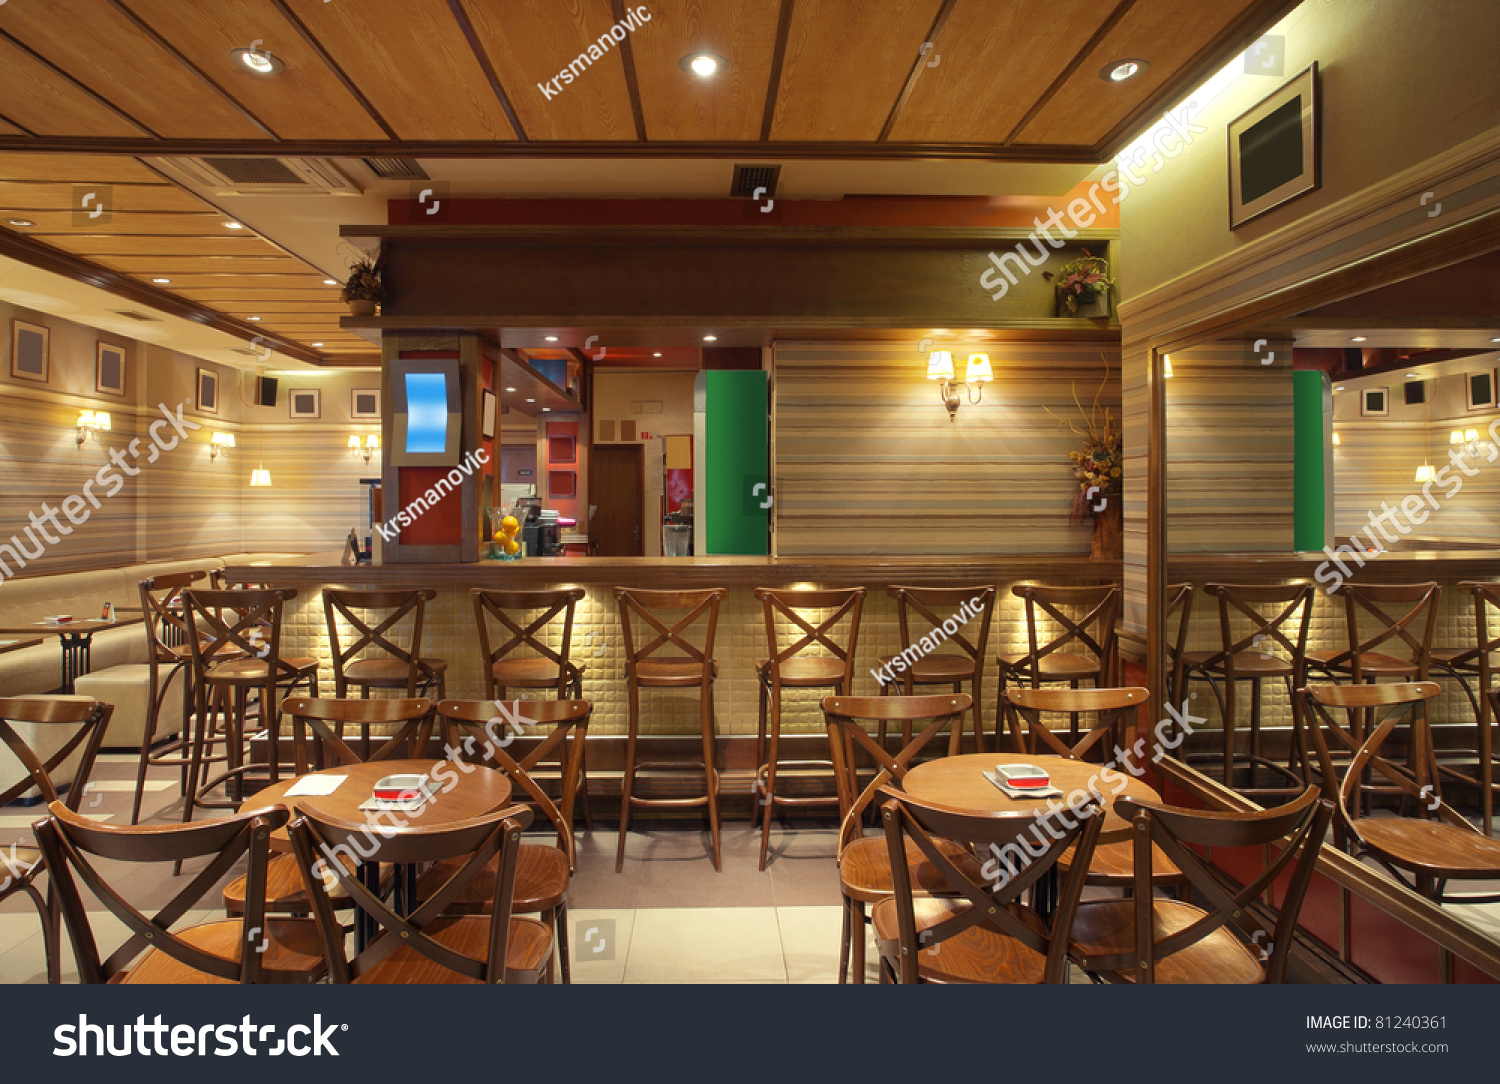 Cafe interior wooden furniture lighting equipment stock for Equipement cafe